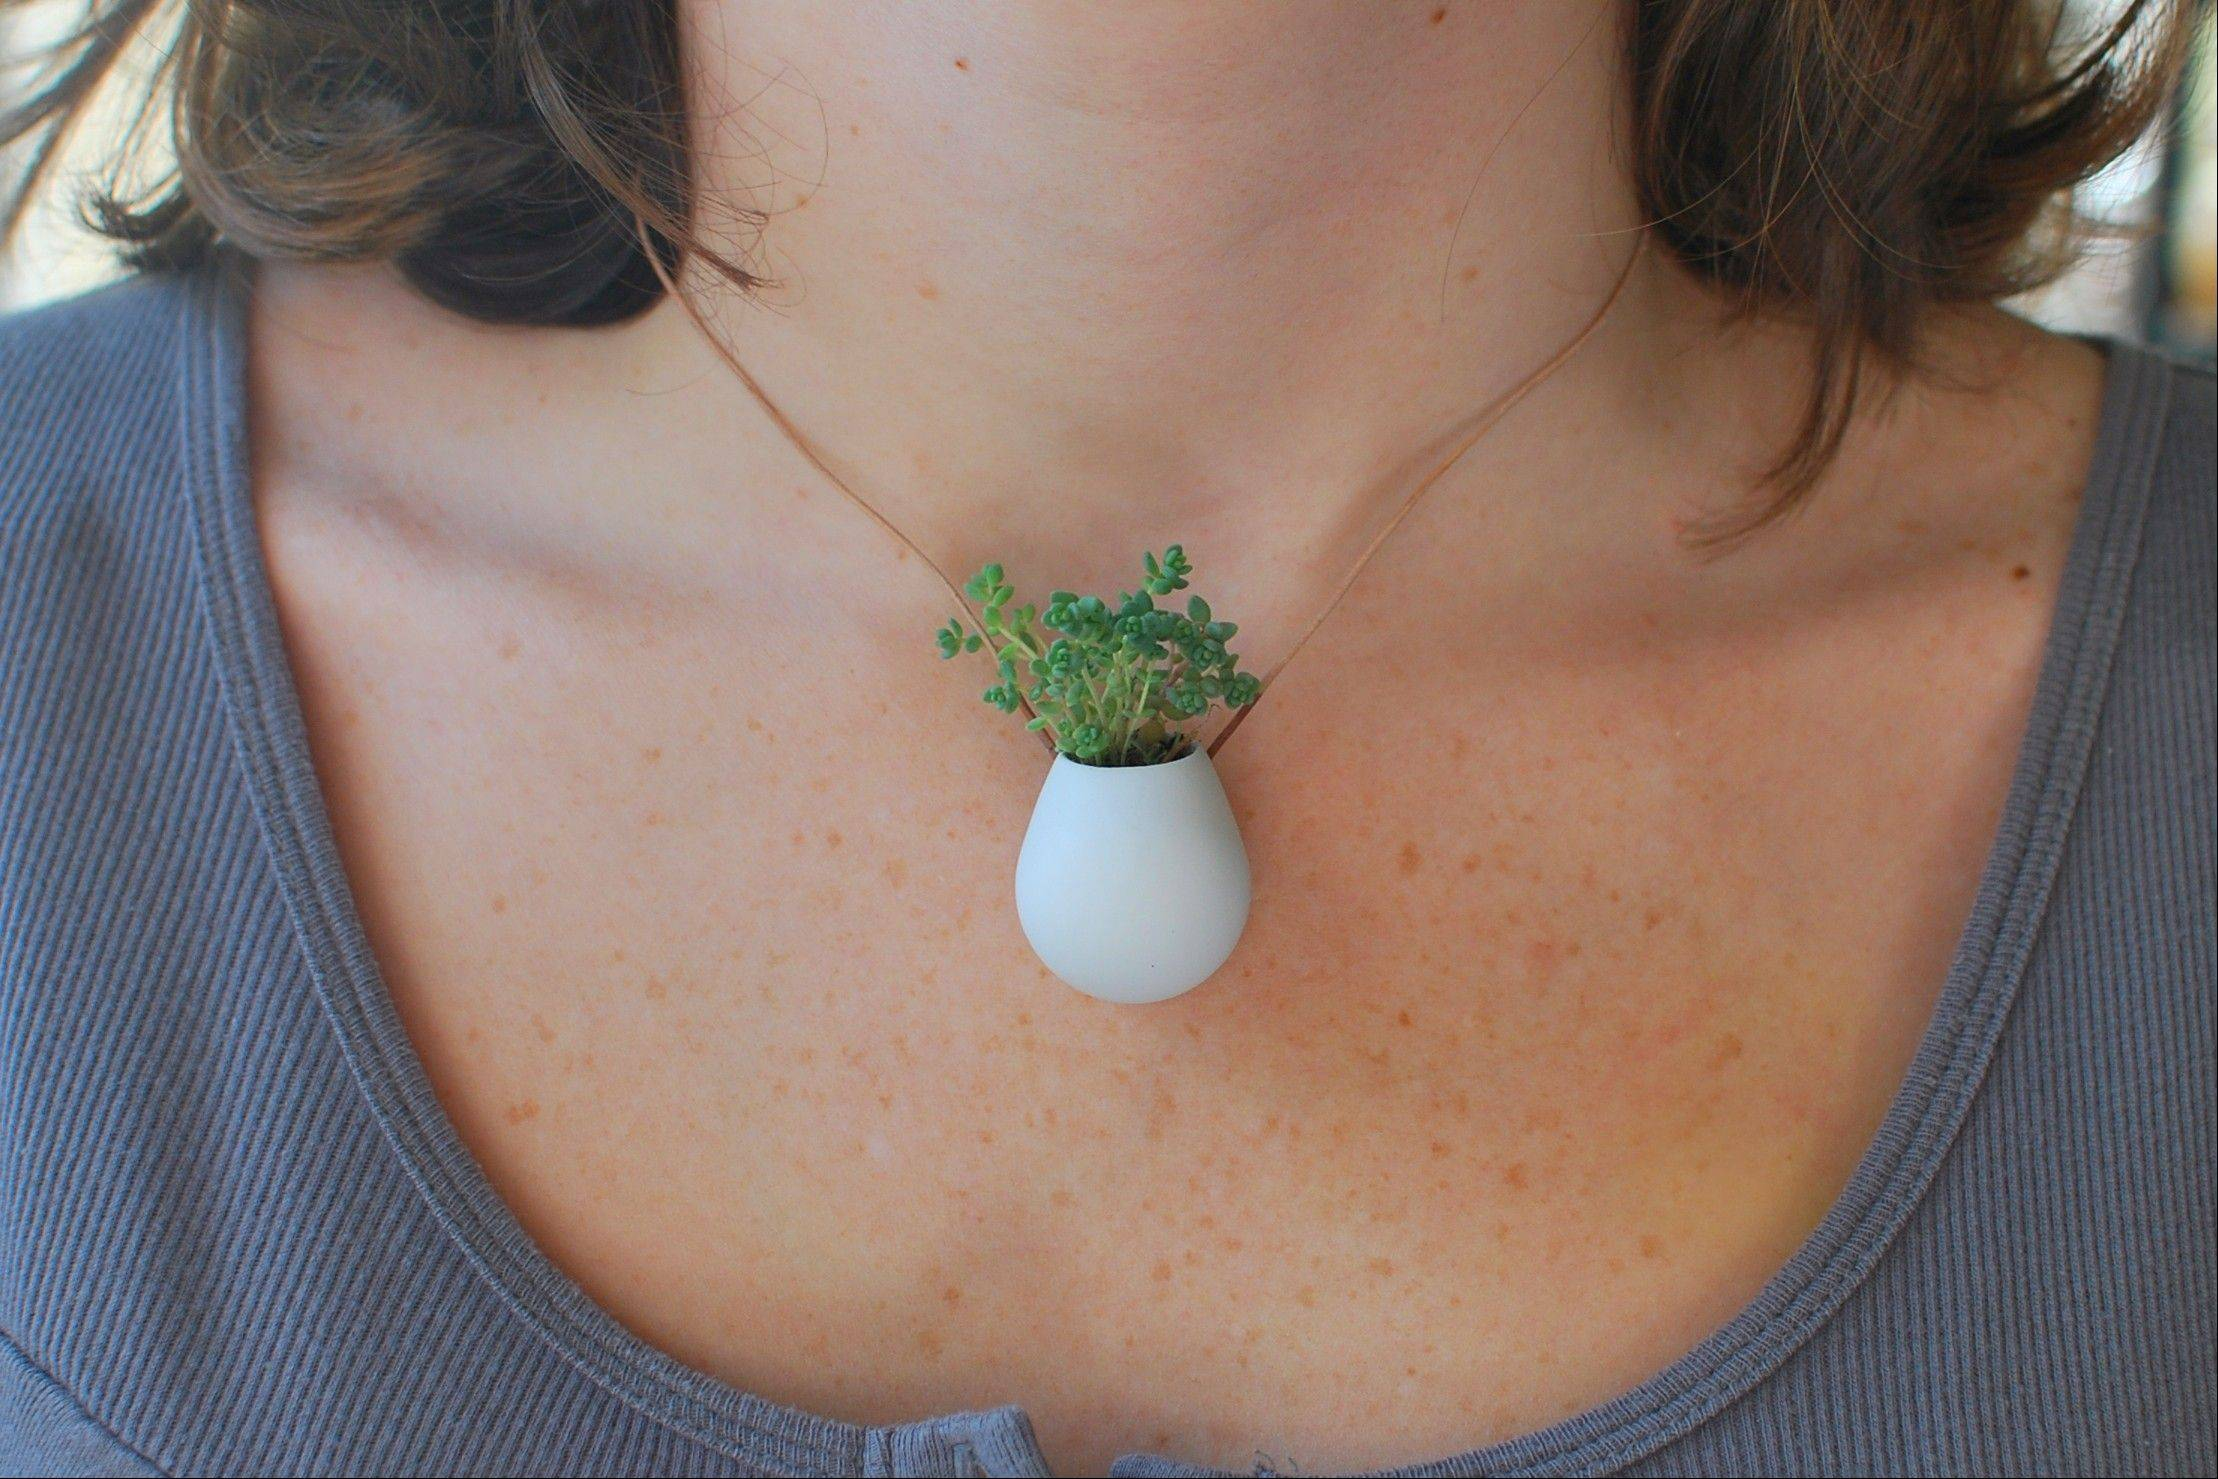 Colleen Jordan, of Atlanta, shows off a tiny wearable planter she created using 3-D modeling software.